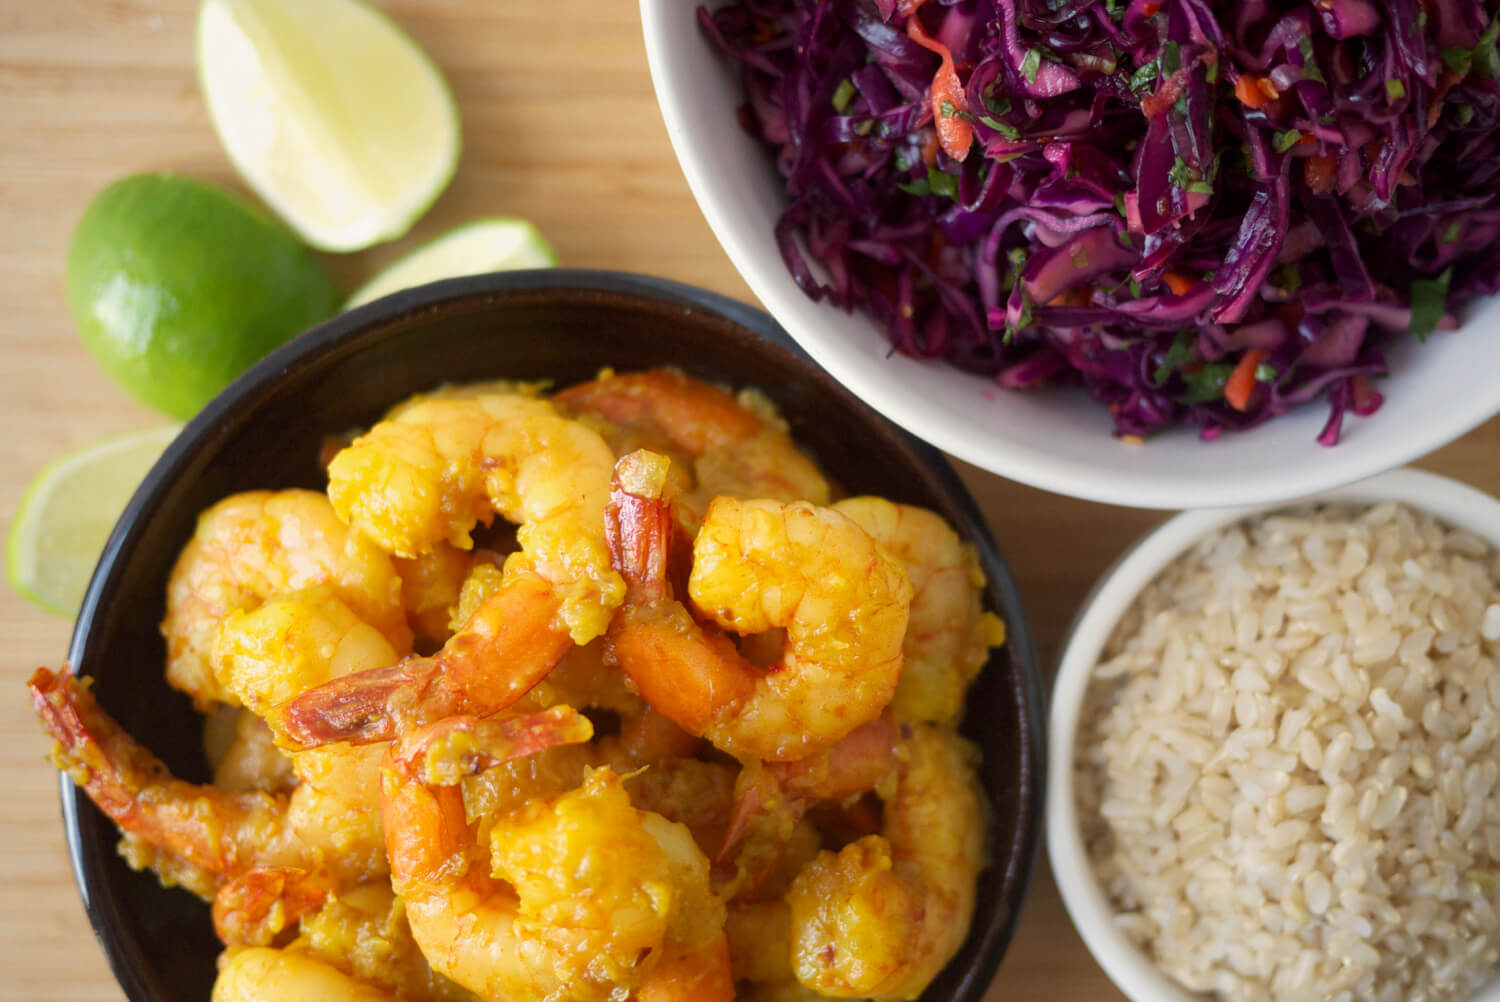 Turmeric-Chili Shrimp with Spicy Slaw